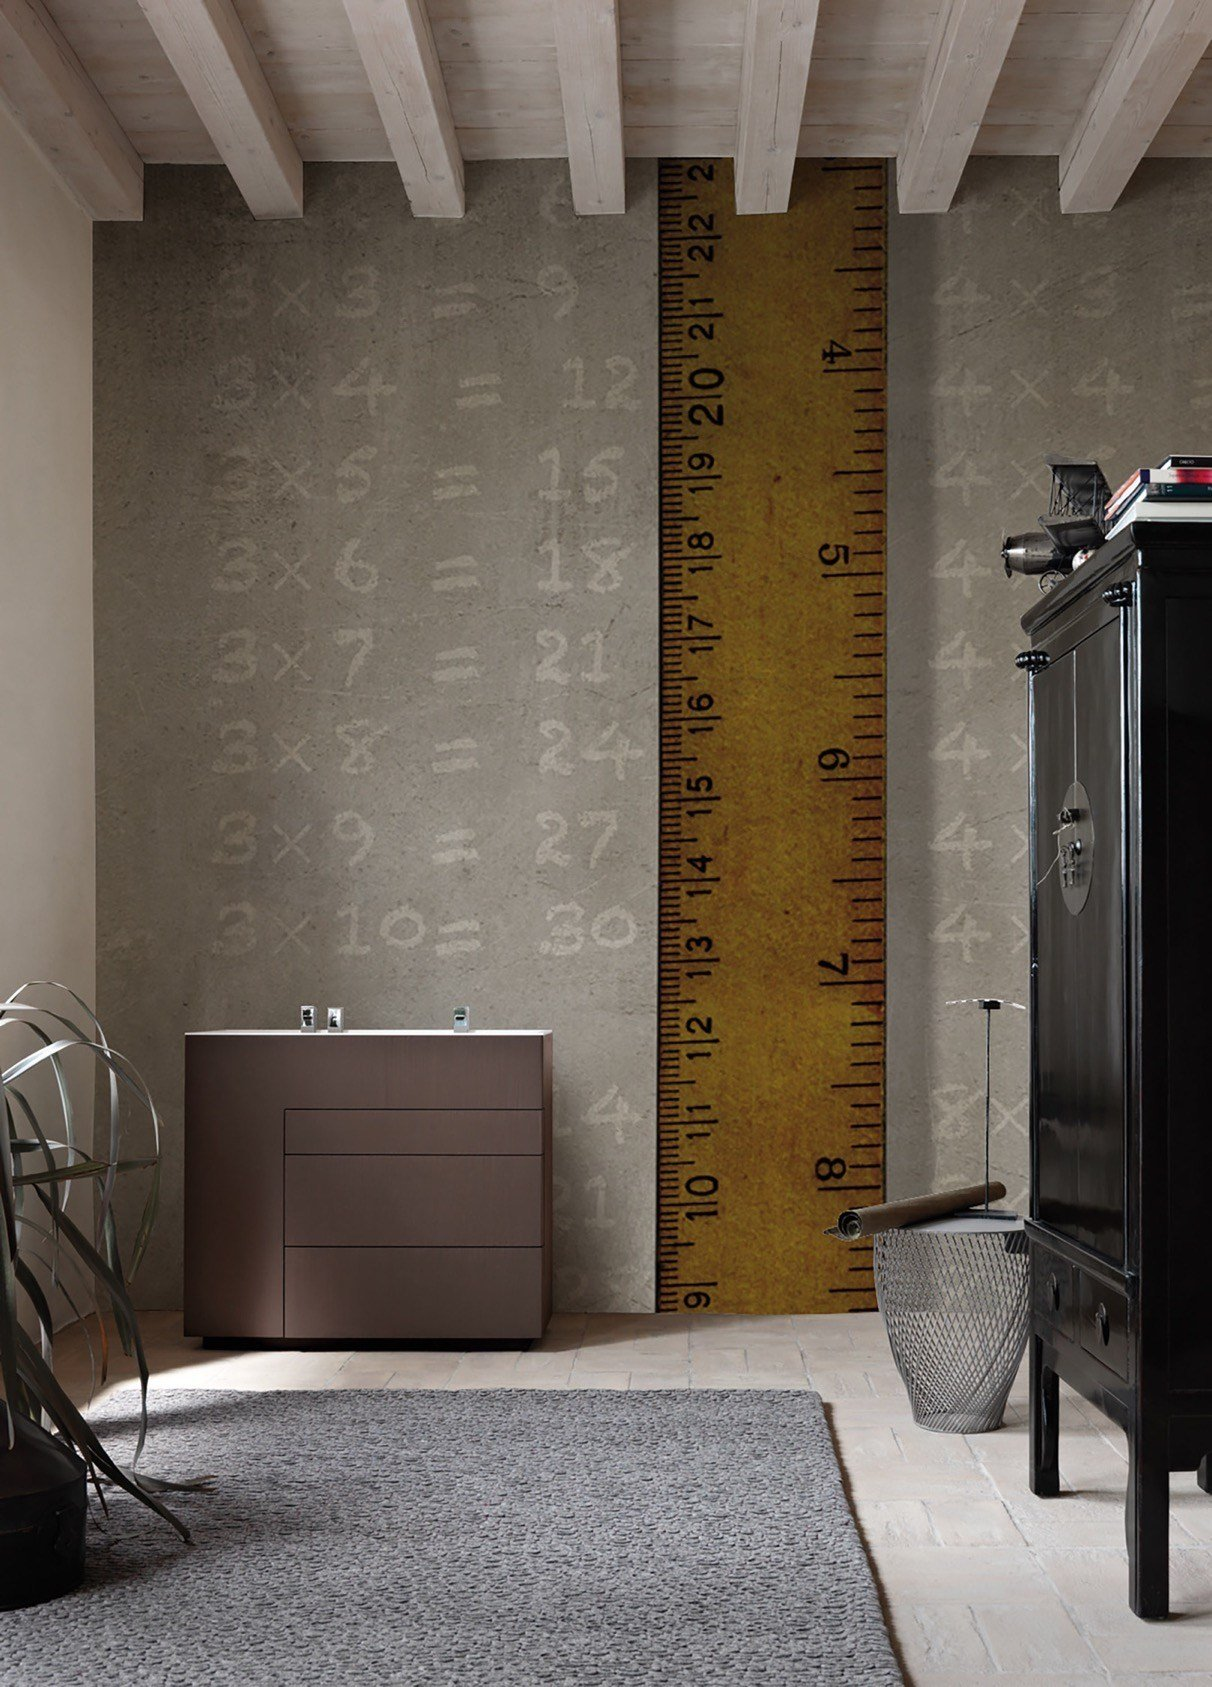 Panoramic writing wallpaper sizeless inkiostro bianco collection ...